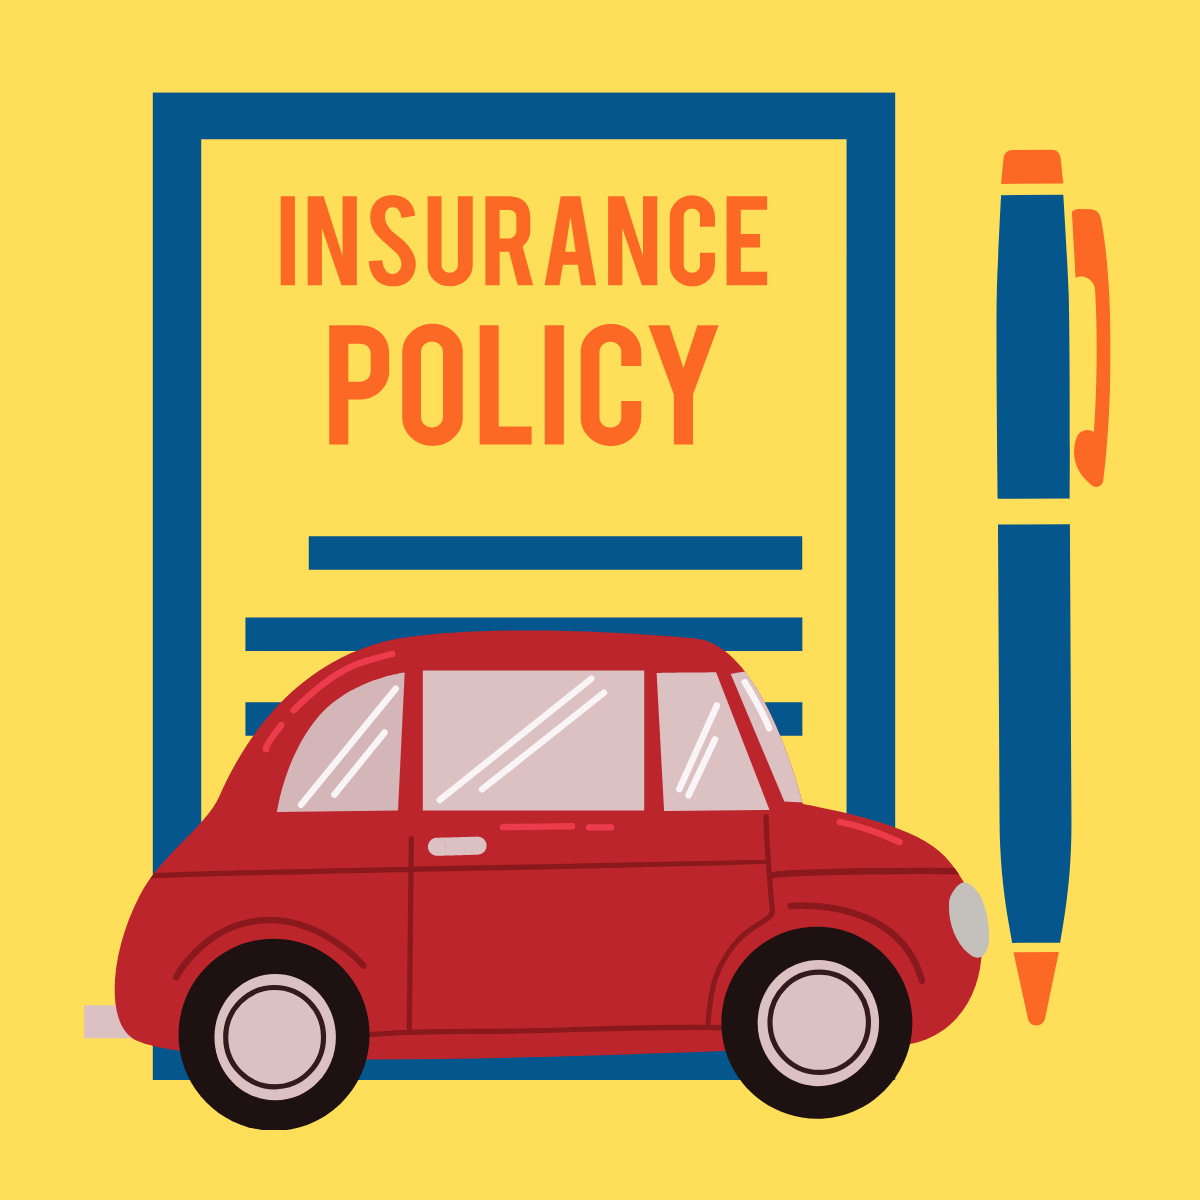 Usage-Based Insurance In Canada